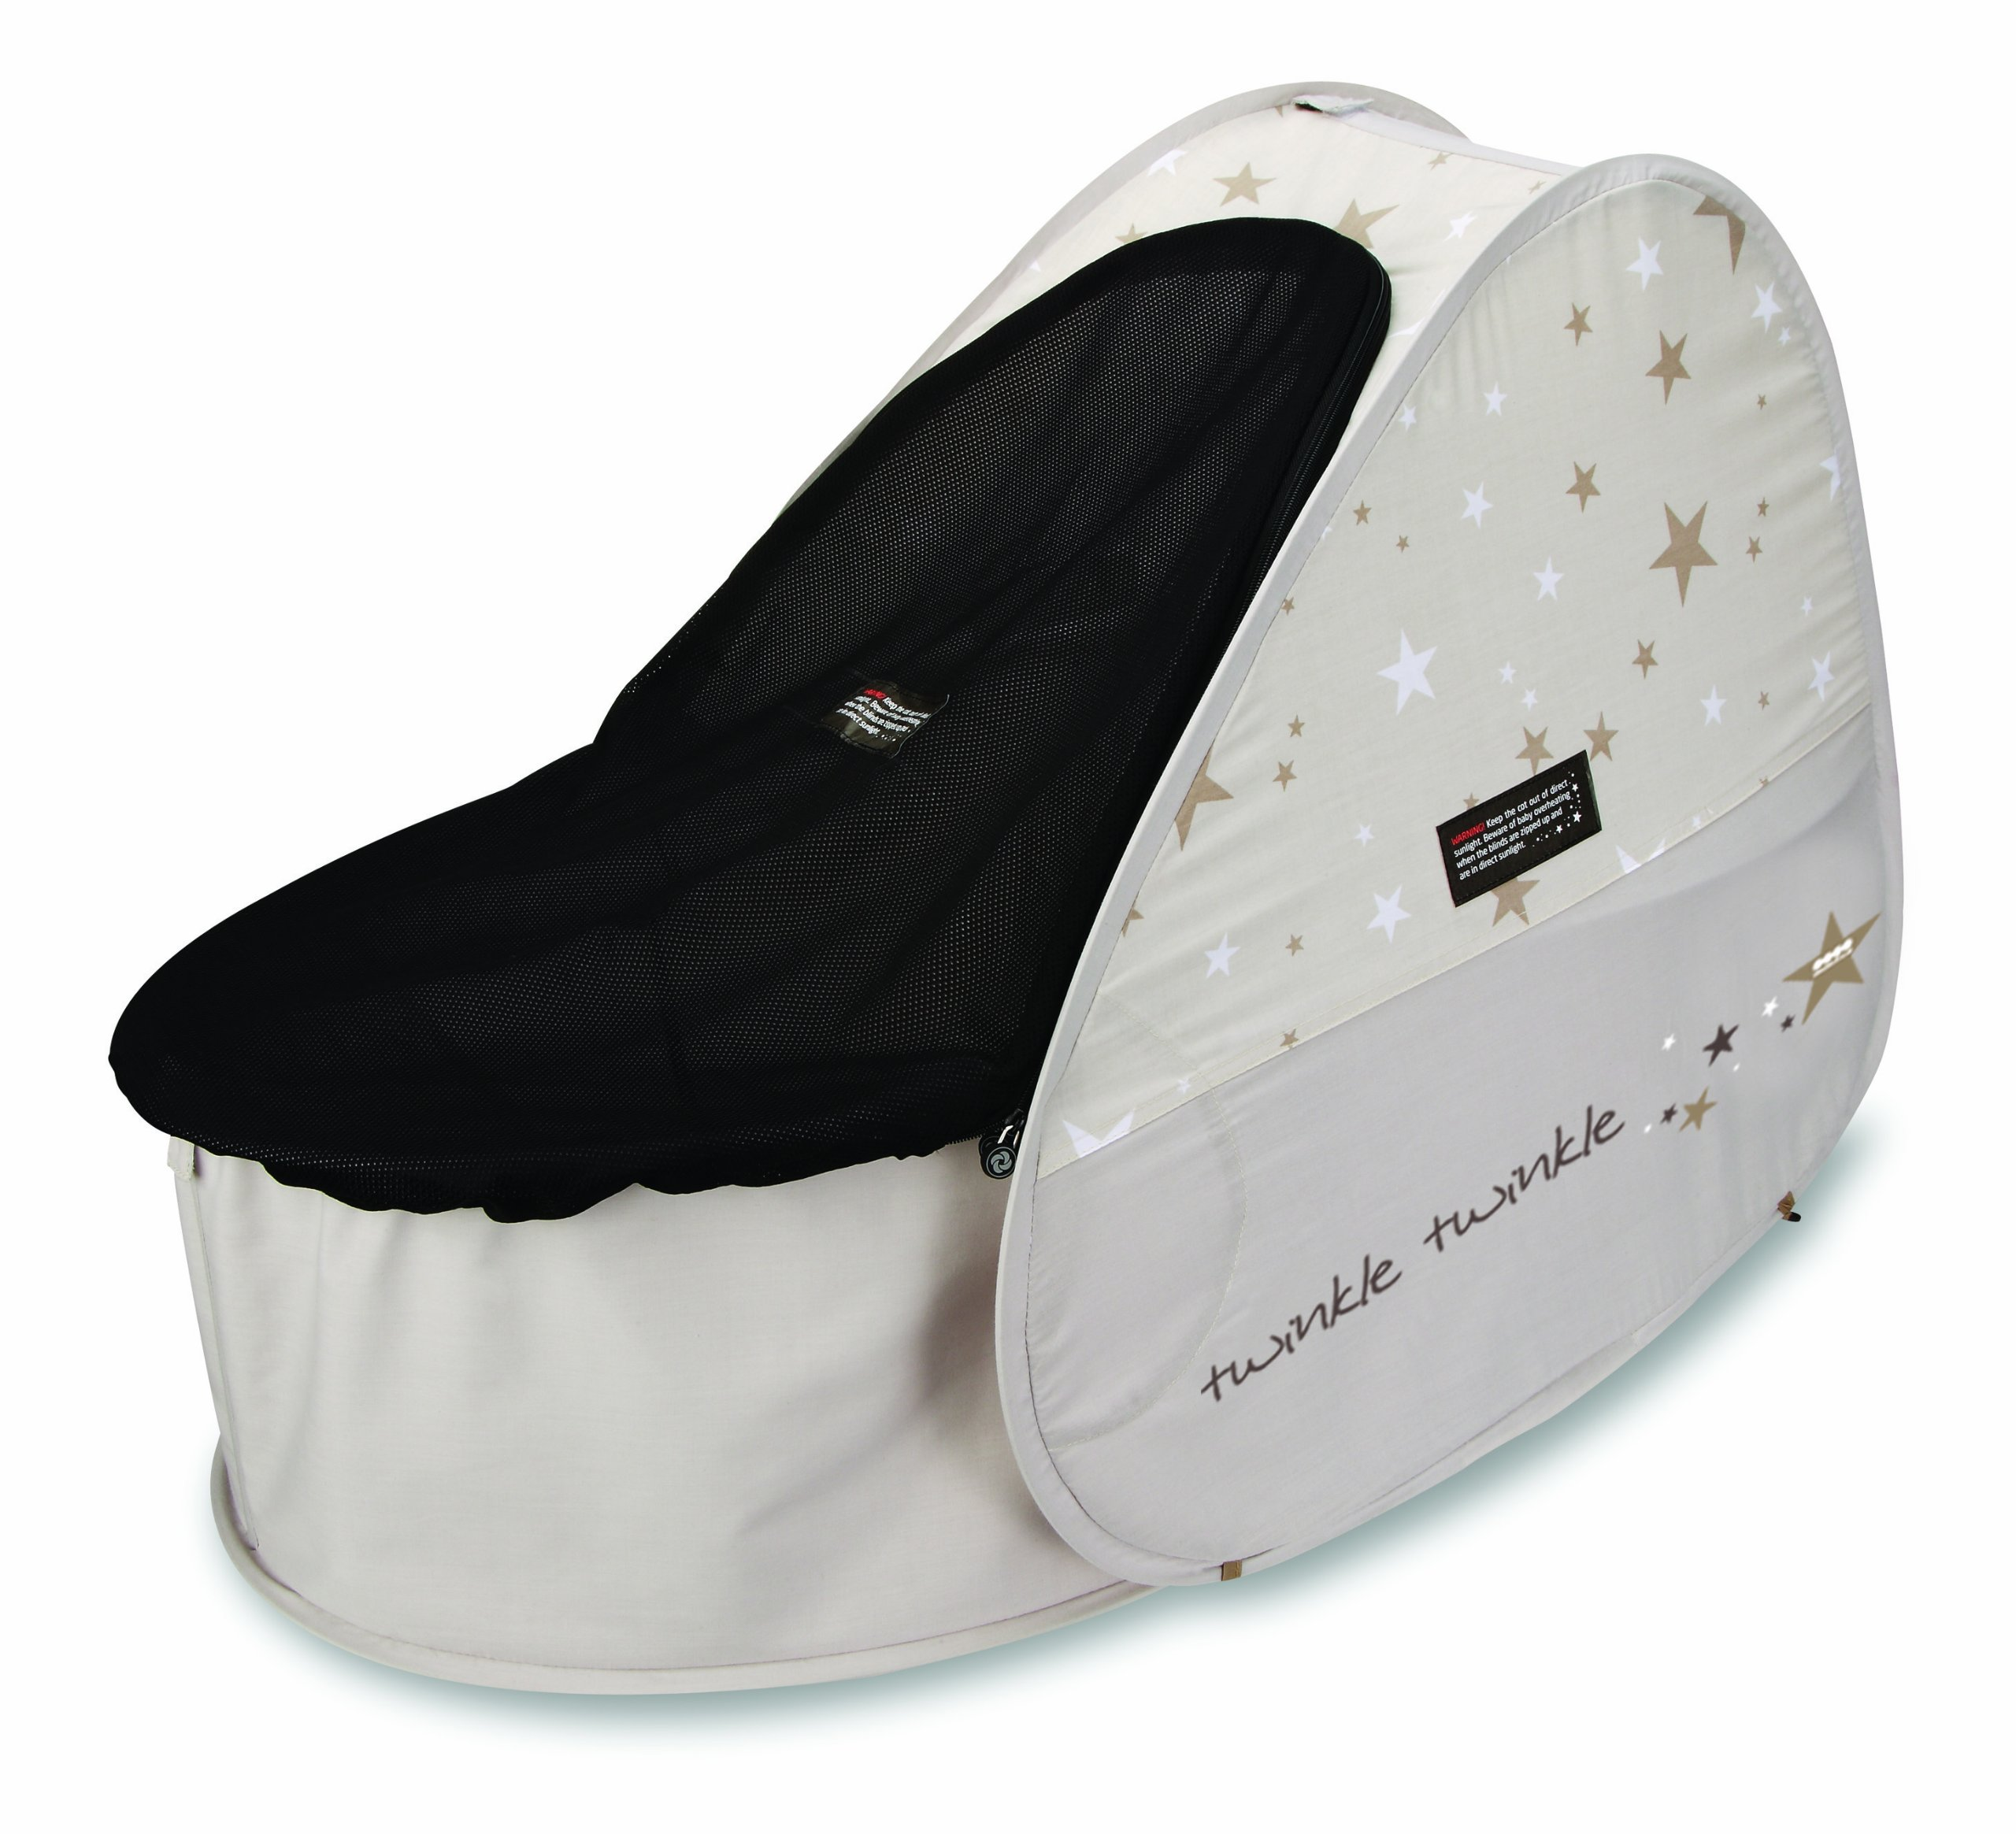 Koo-di 80 x 50 x 58 cm Sun and Sleep Pop Up Travel Bassinette  A comfortable bassinette ideal for use at home and on holidays or weekends away A polycotton travel bassinette Ideal up to 6 months or until baby can sit unaided 1